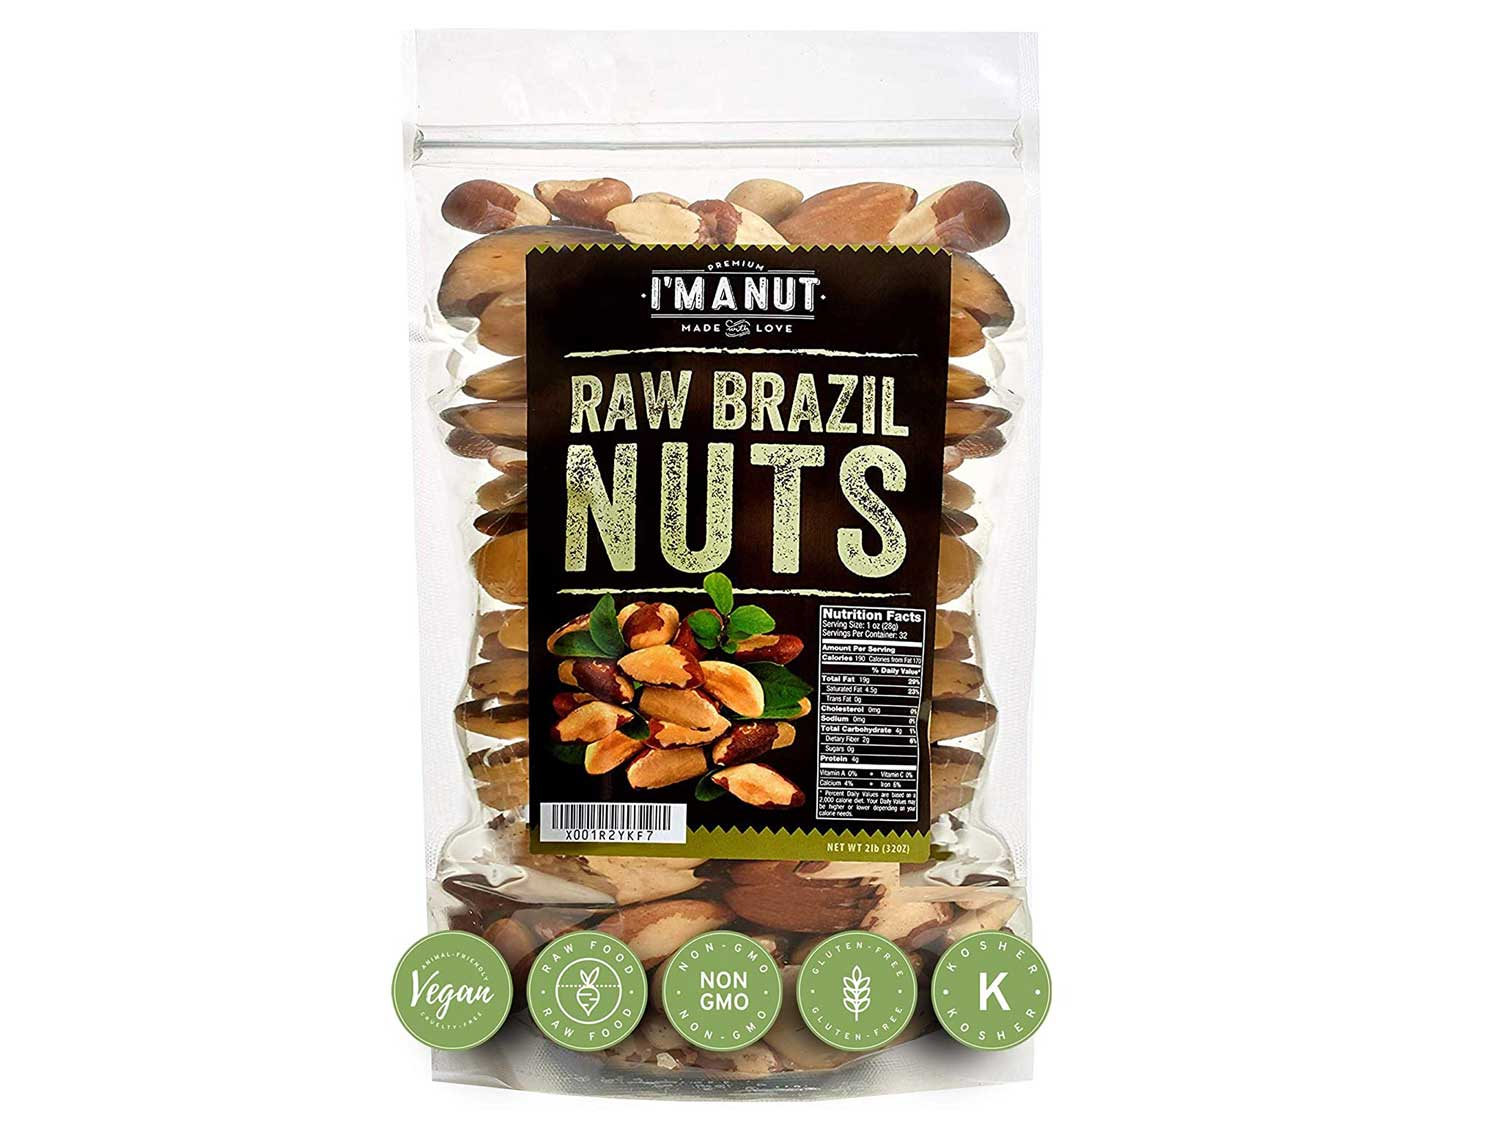 Raw Brazil Nuts 32oz (2 Pounds) Superior to Organic, No PPO, Probiotic, Large, Fresh and Resealable bag